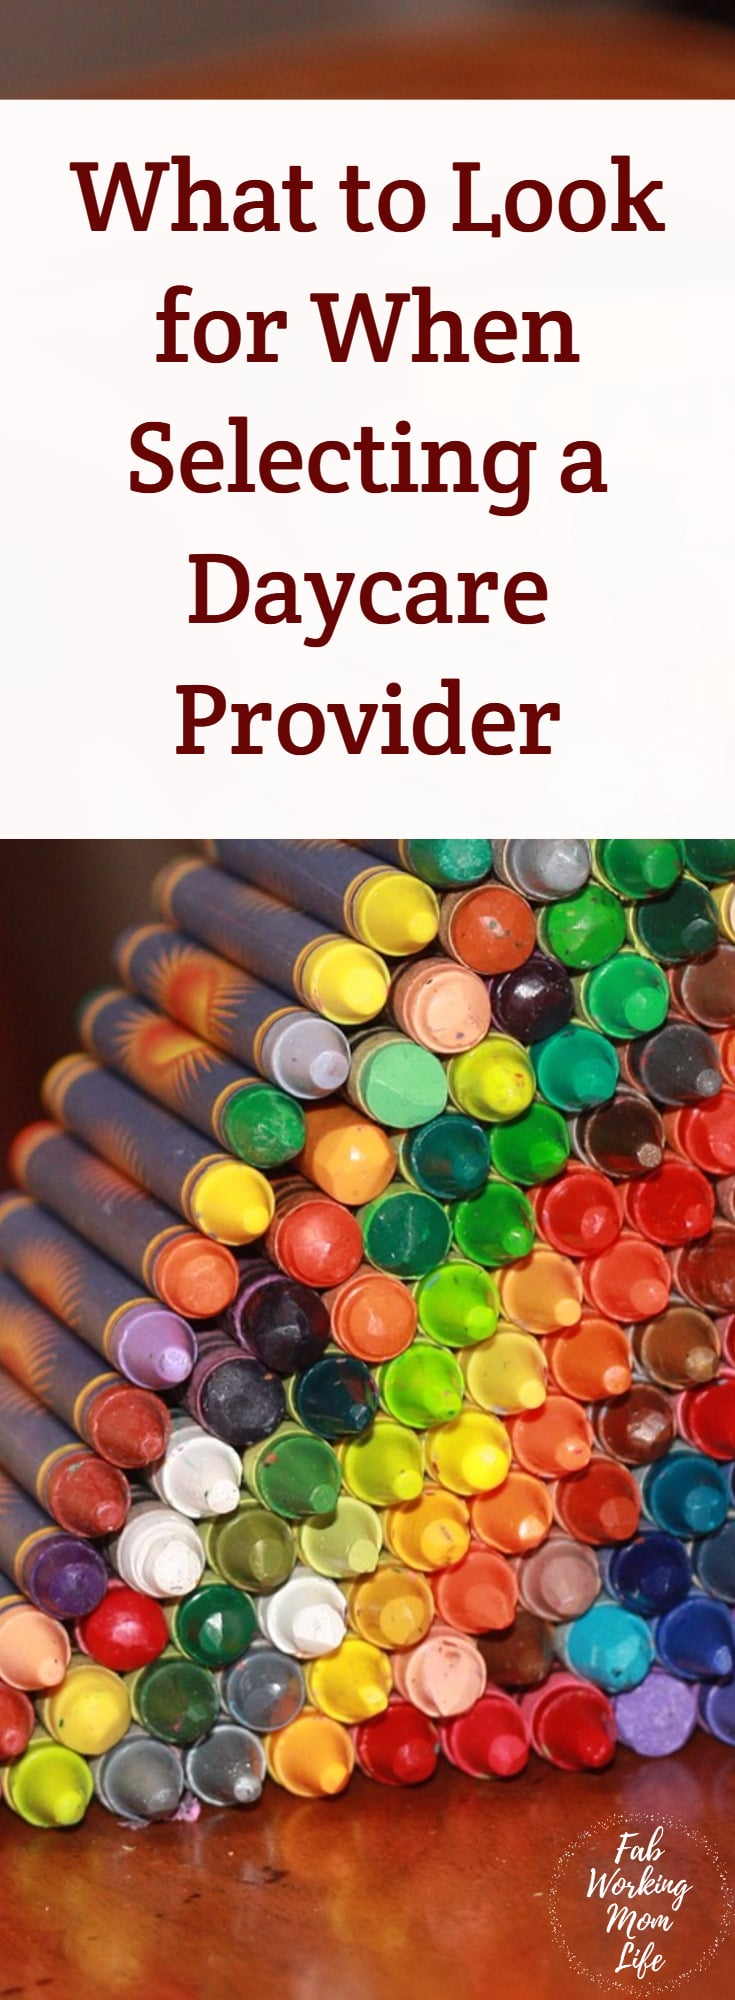 What to Look for When Selecting a Daycare Provider #workingmom #childcare #daycare